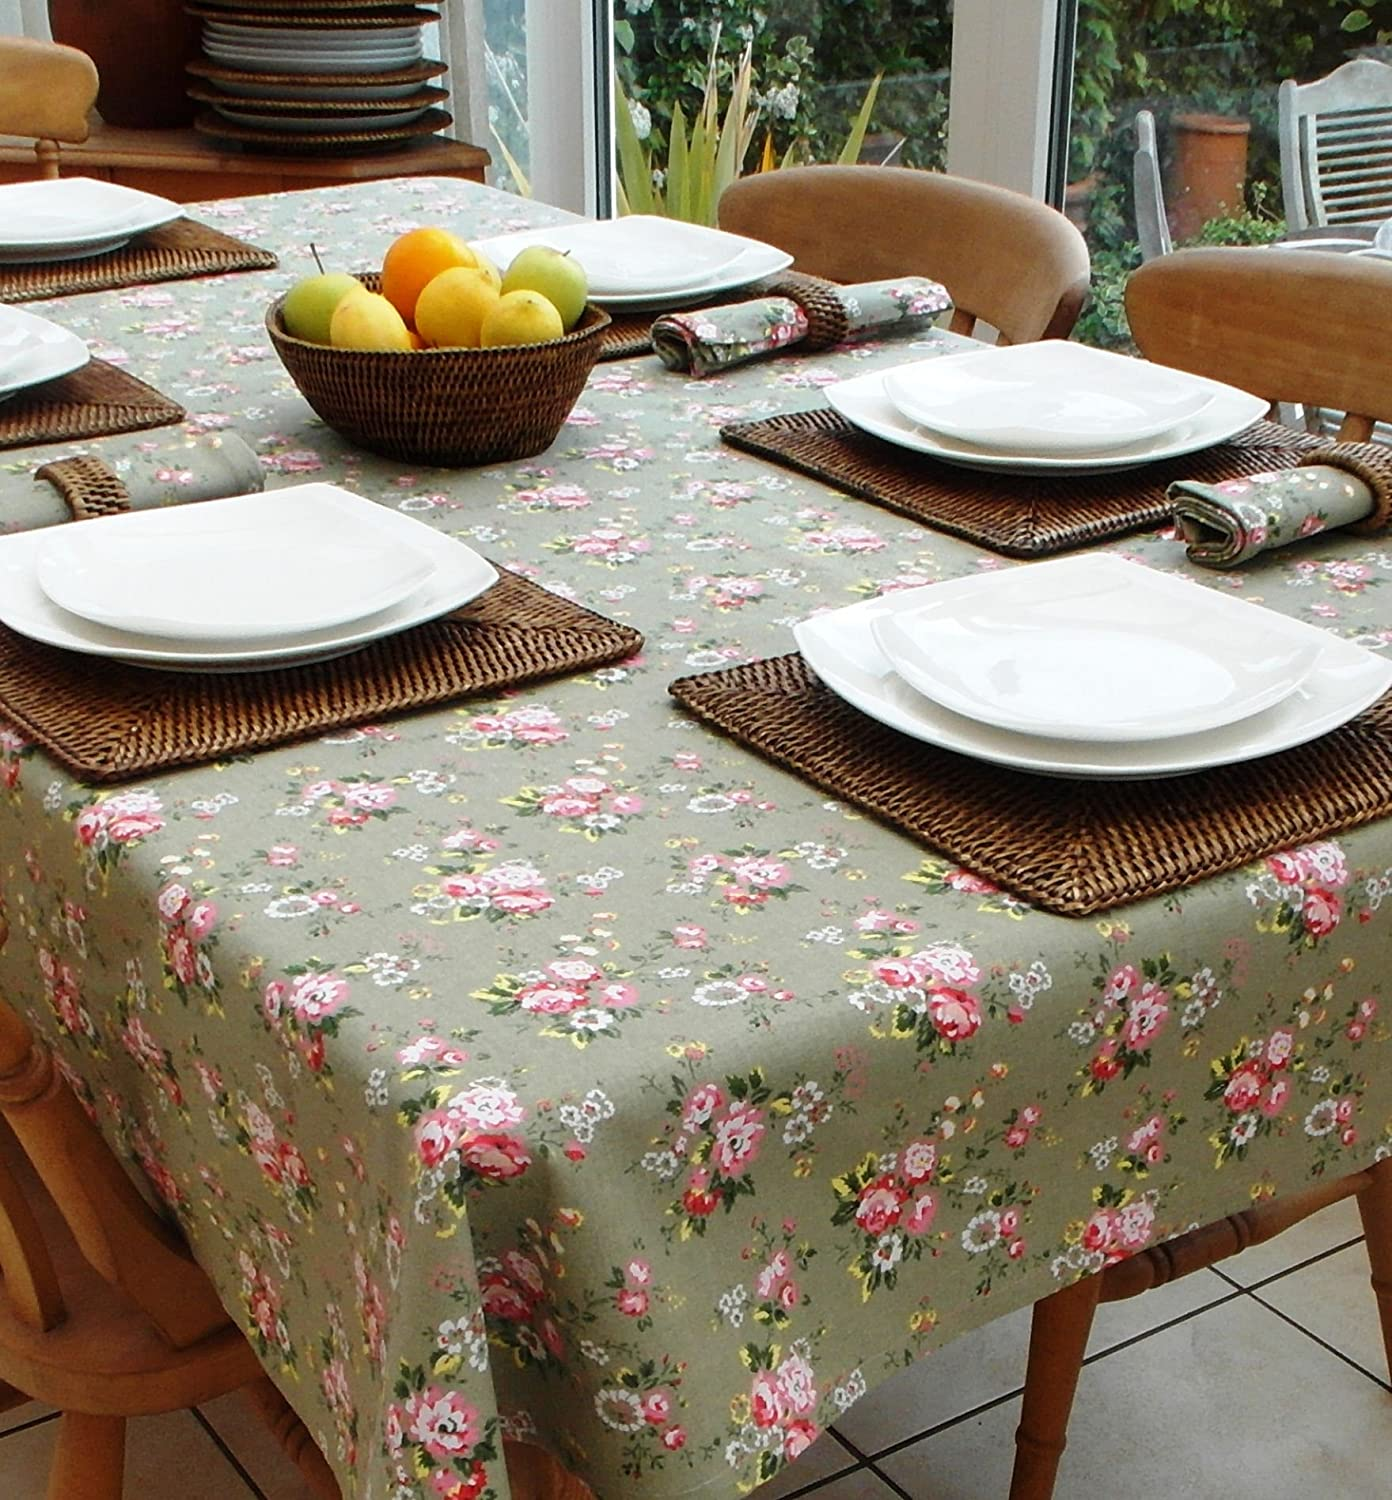 140x210cm RECTANGLE VINTAGE SAGE GREEN WITH PINK FLOWERS COTTON TABLECLOTH *CATH KIDSTON STYLE* - 6 SEATER THE TABLECLOTH COMPANY